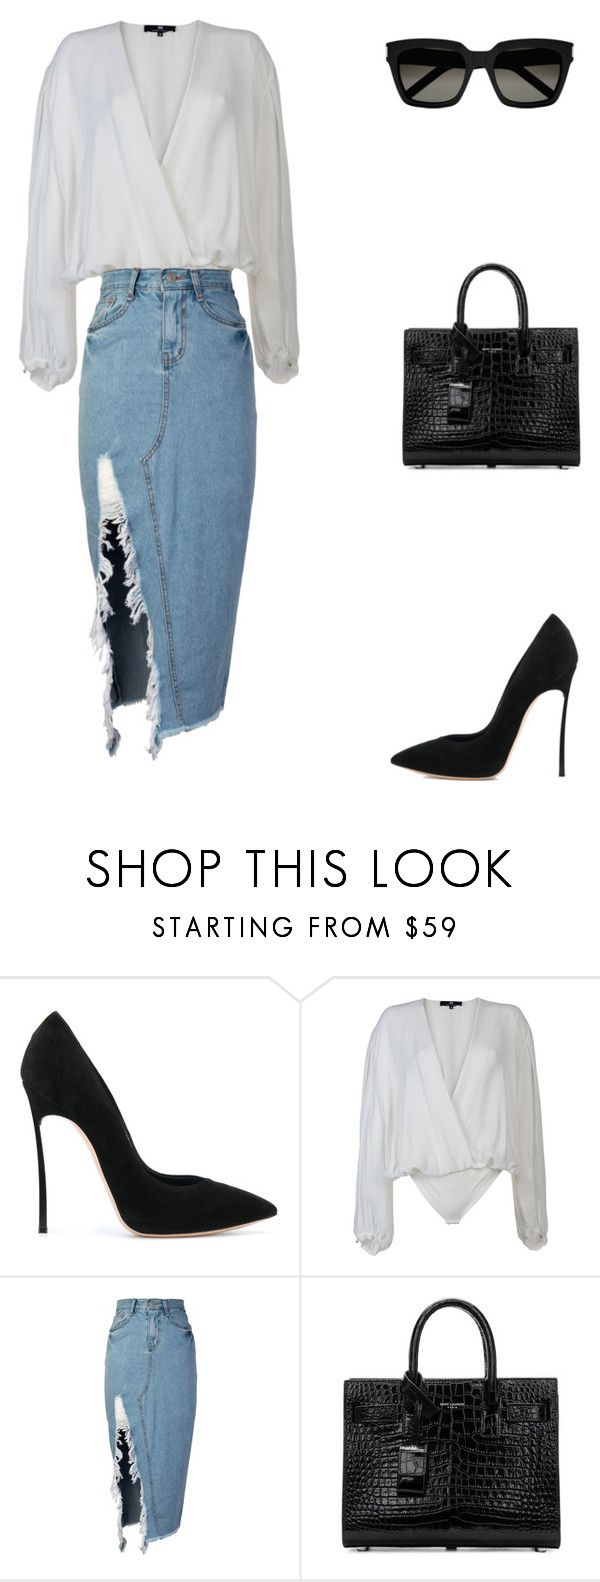 """""""Untitled #449"""" by mitzi9 ❤ liked on Polyvore featuring Casadei, Elisabetta Franchi, storets and Yves Saint Laurent"""